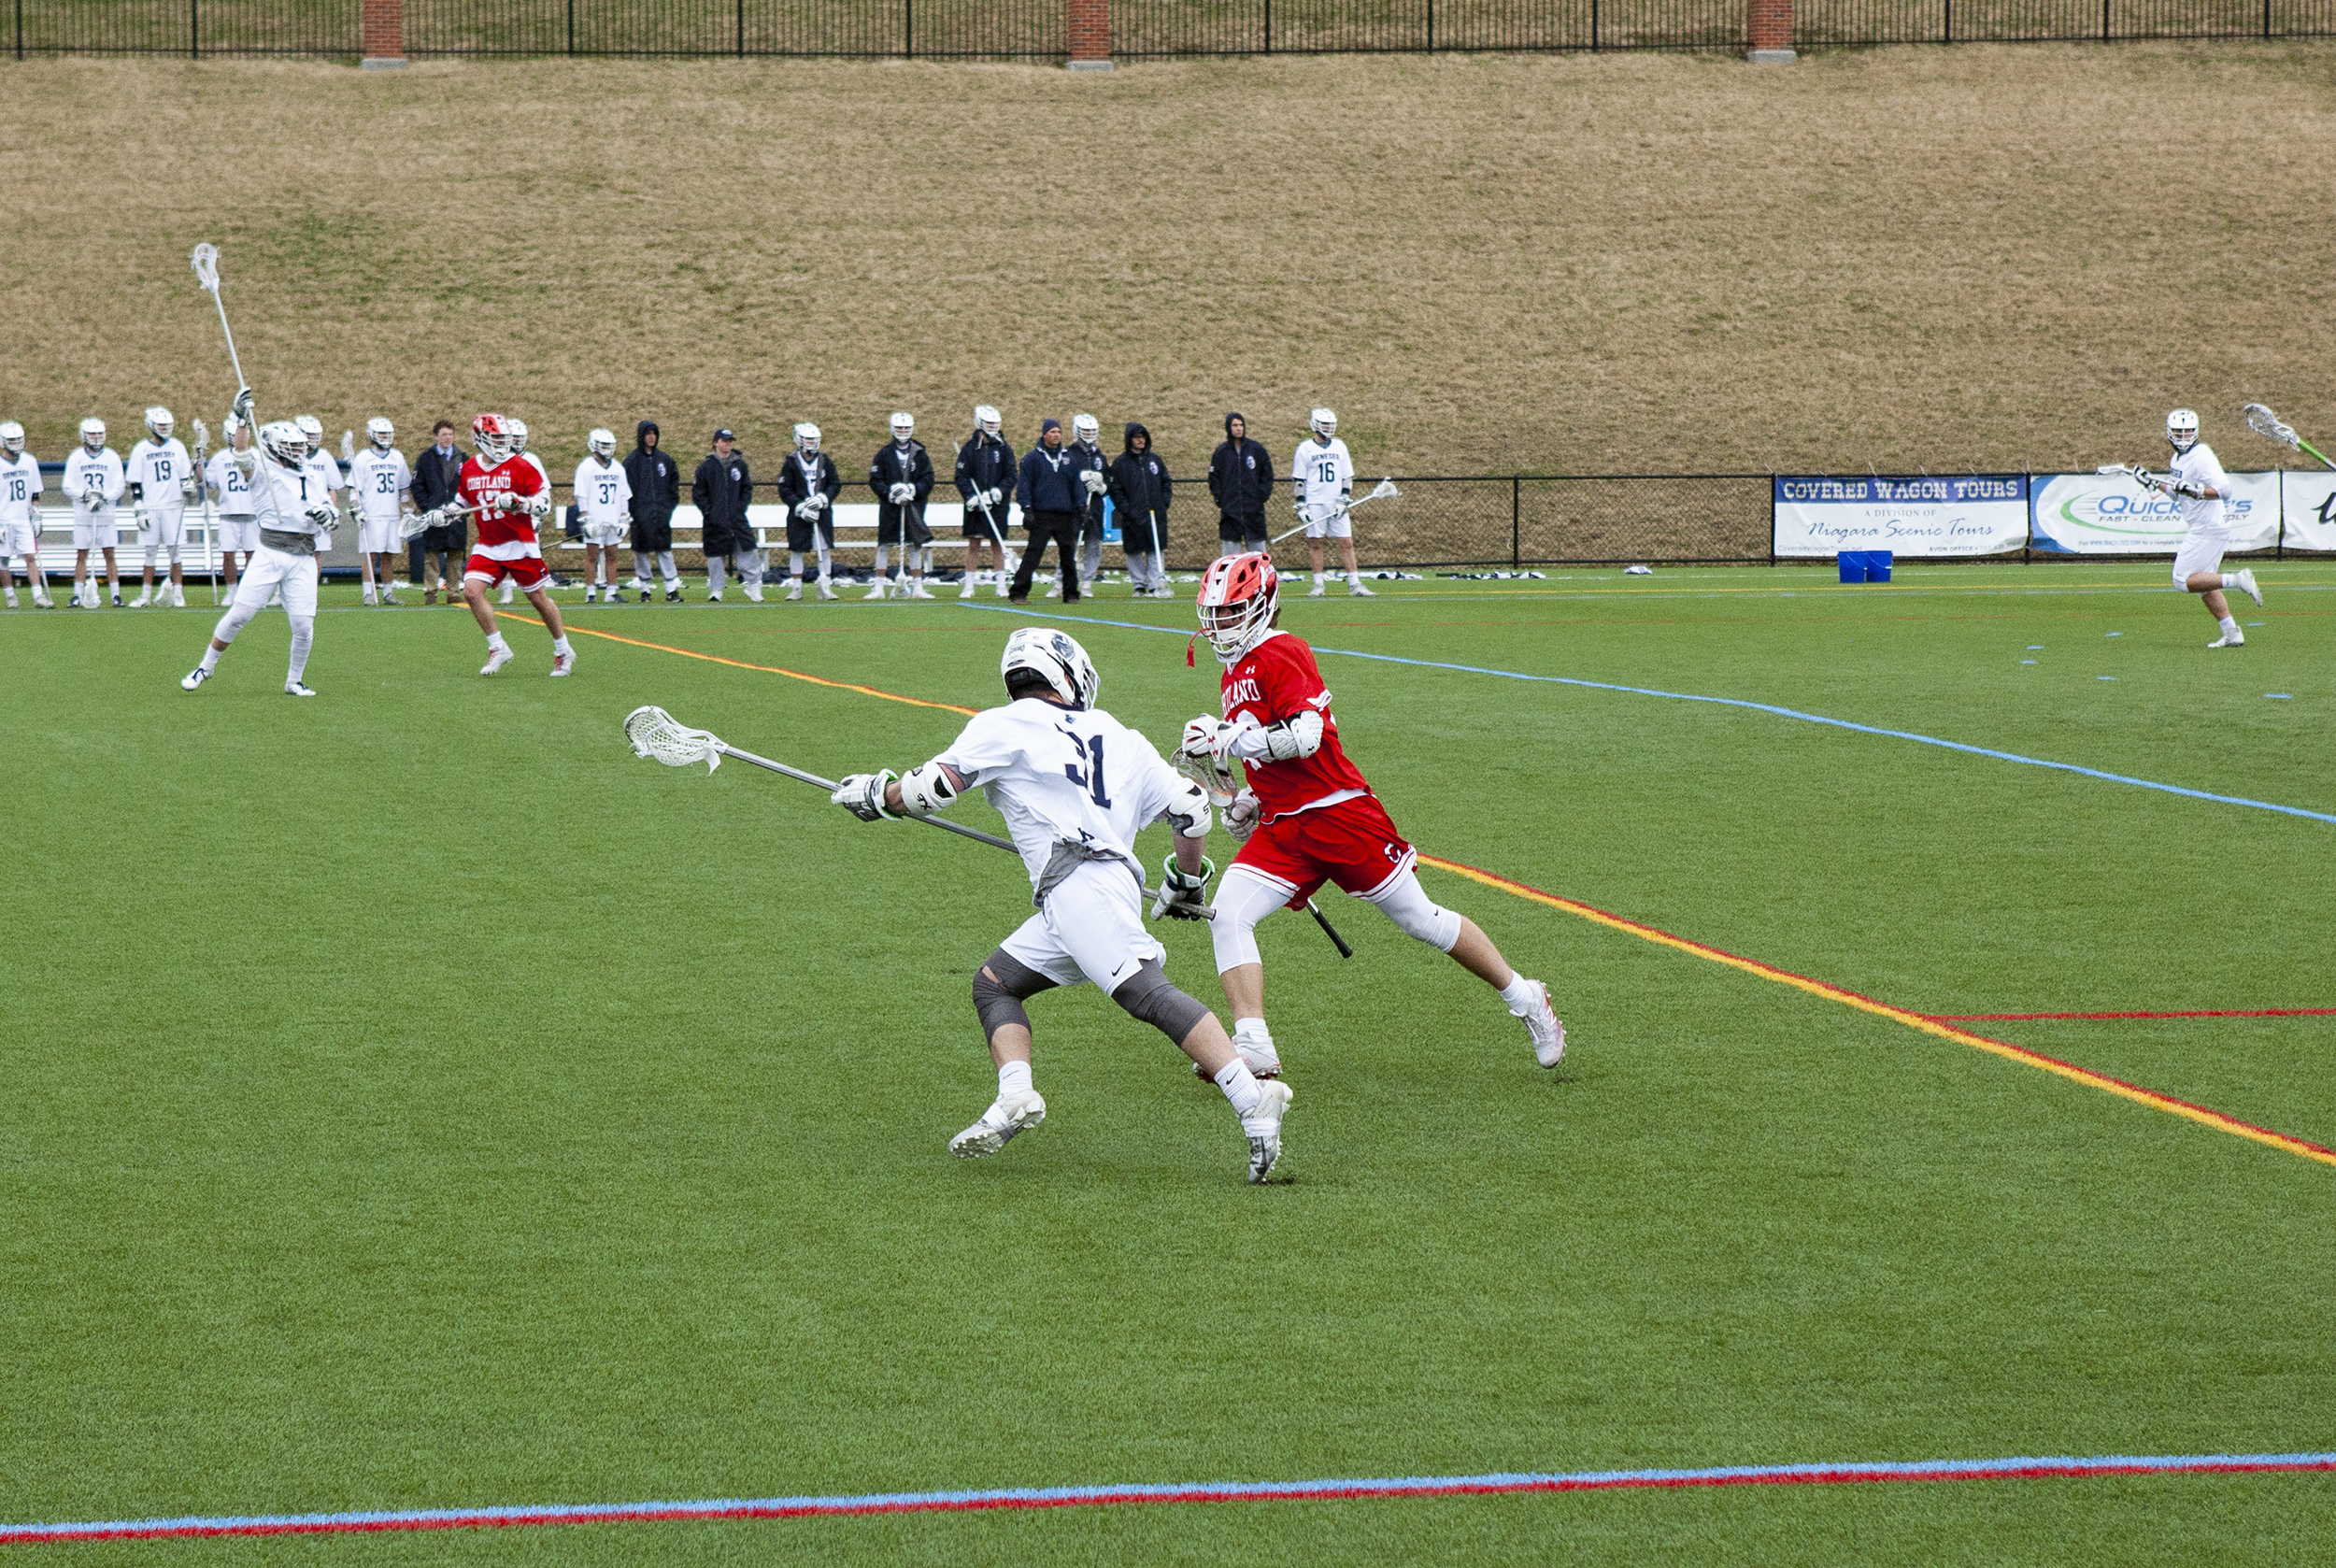 Senior defender Jack Crowley (pictured above) takes on an opposing attacker in a game against SUNY Cortland on Wednesday April 10. Geneseo lost 13-11 to the top-ranked team in the conference (Udeshi Seneviratne/Photo Editor).